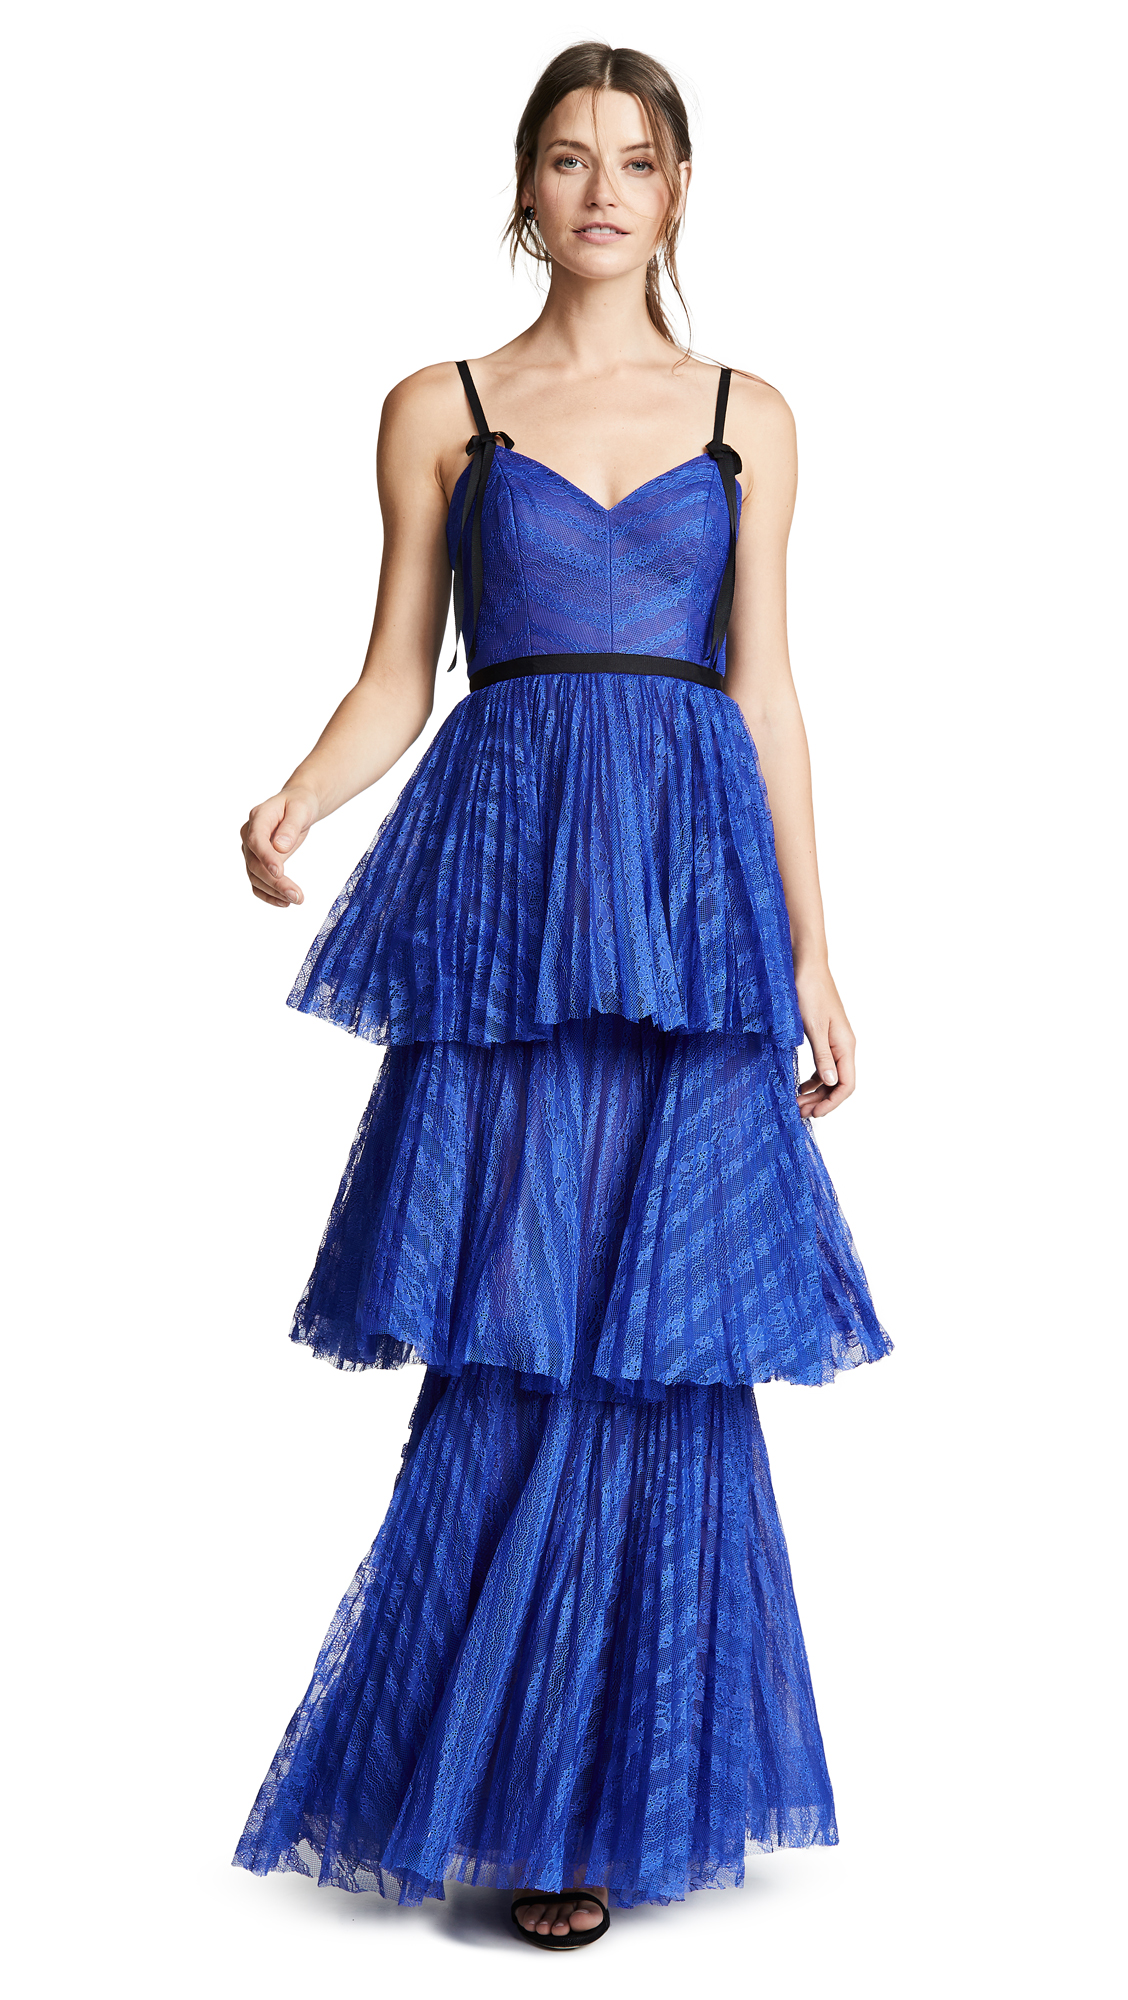 MARCHESA NOTTE Sleeveless Striped Lace Tiered Gown in Royal